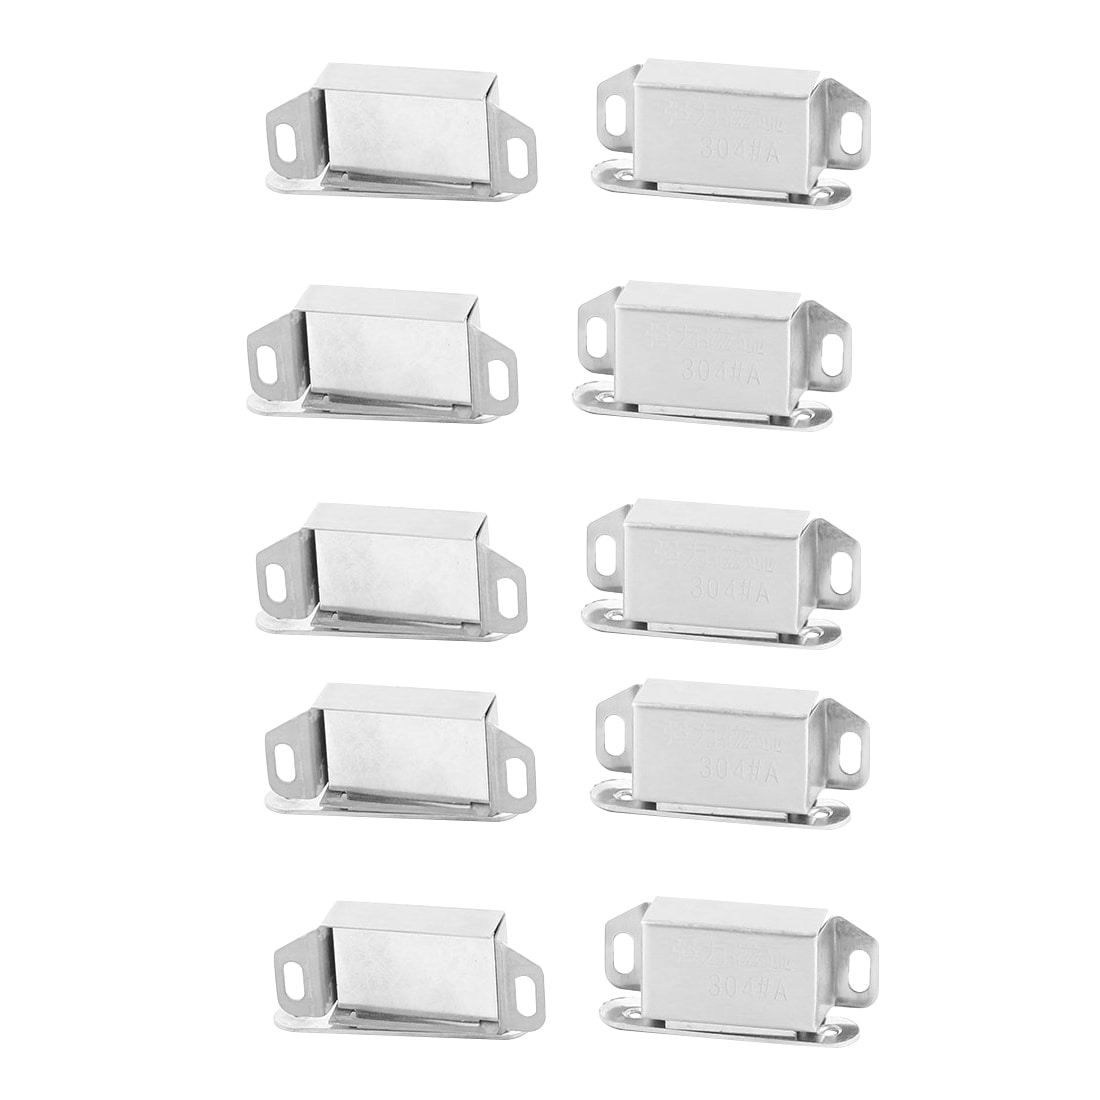 Home Stainless Steel Door Wardrobe Closet Stopper Holder Magnetic Catch Latch